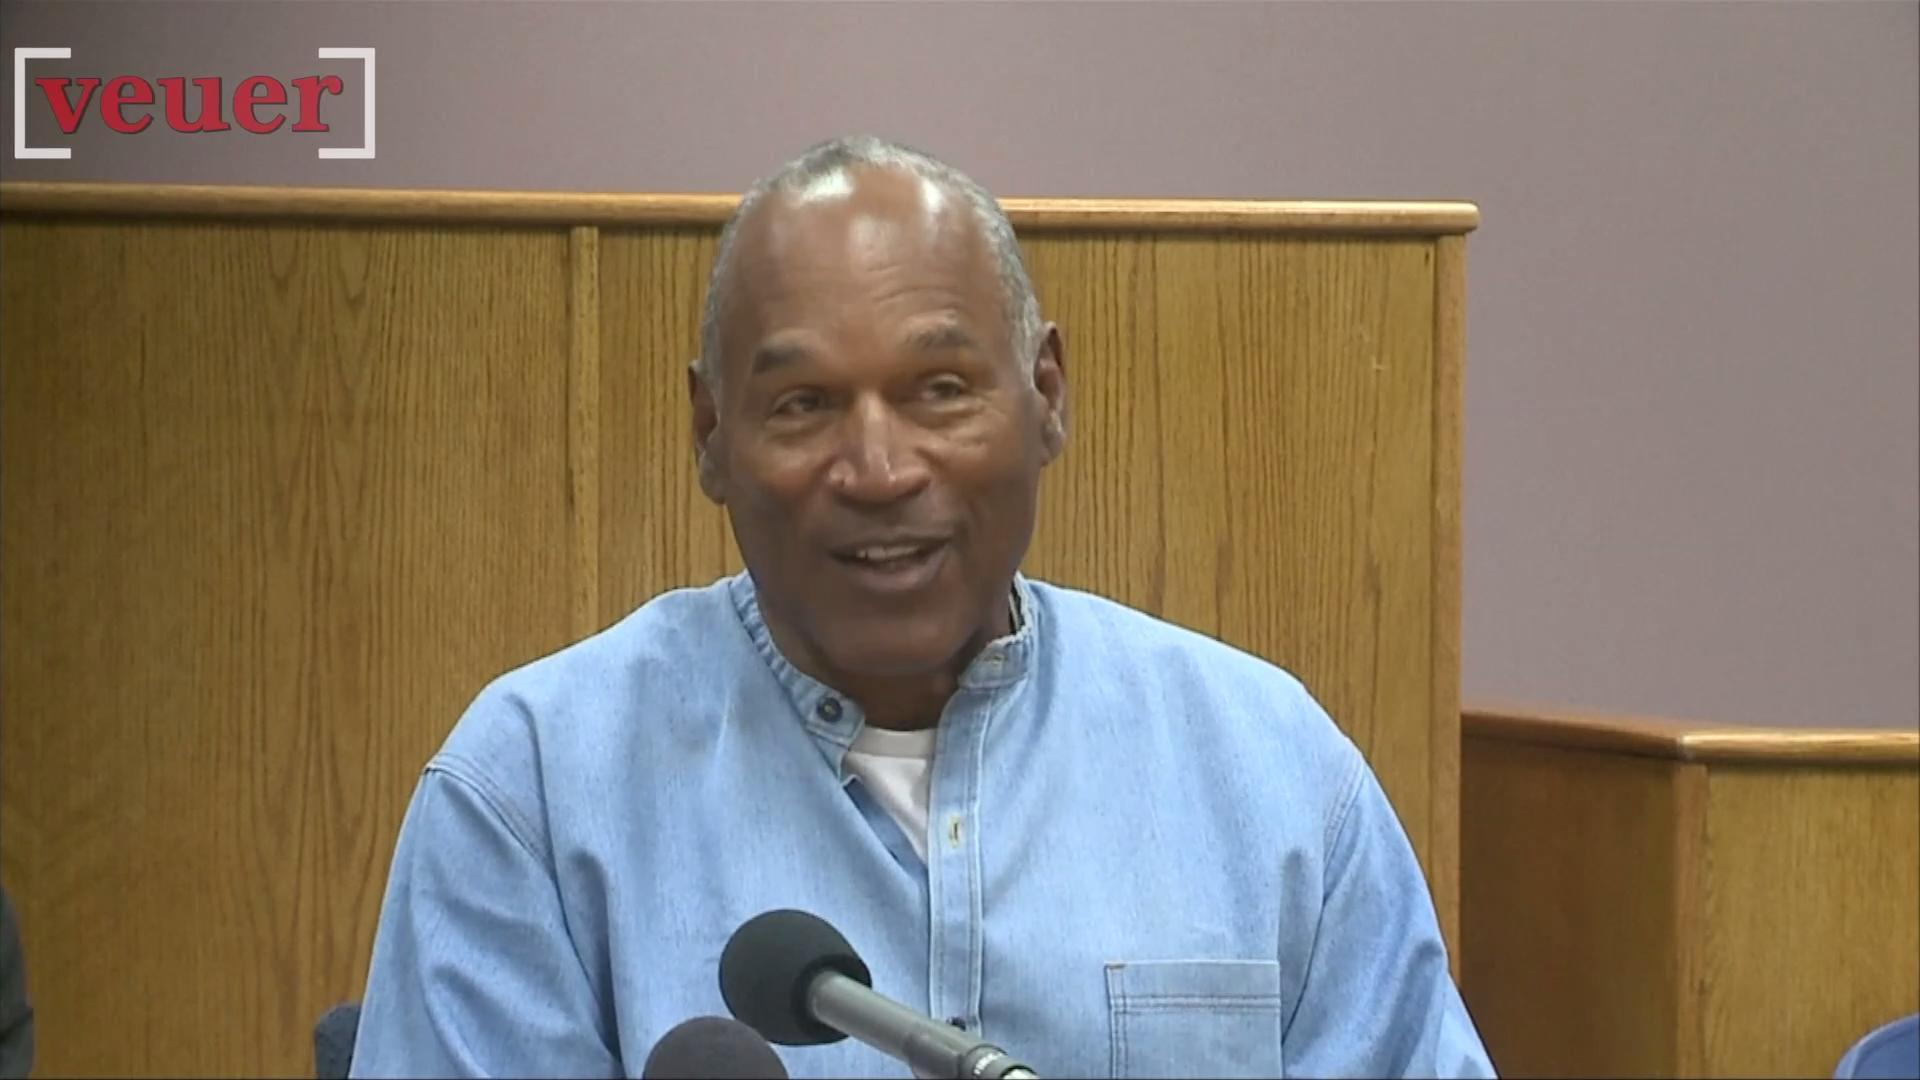 OJ Simpson Granted Parole After Almost 9 Years in Prison